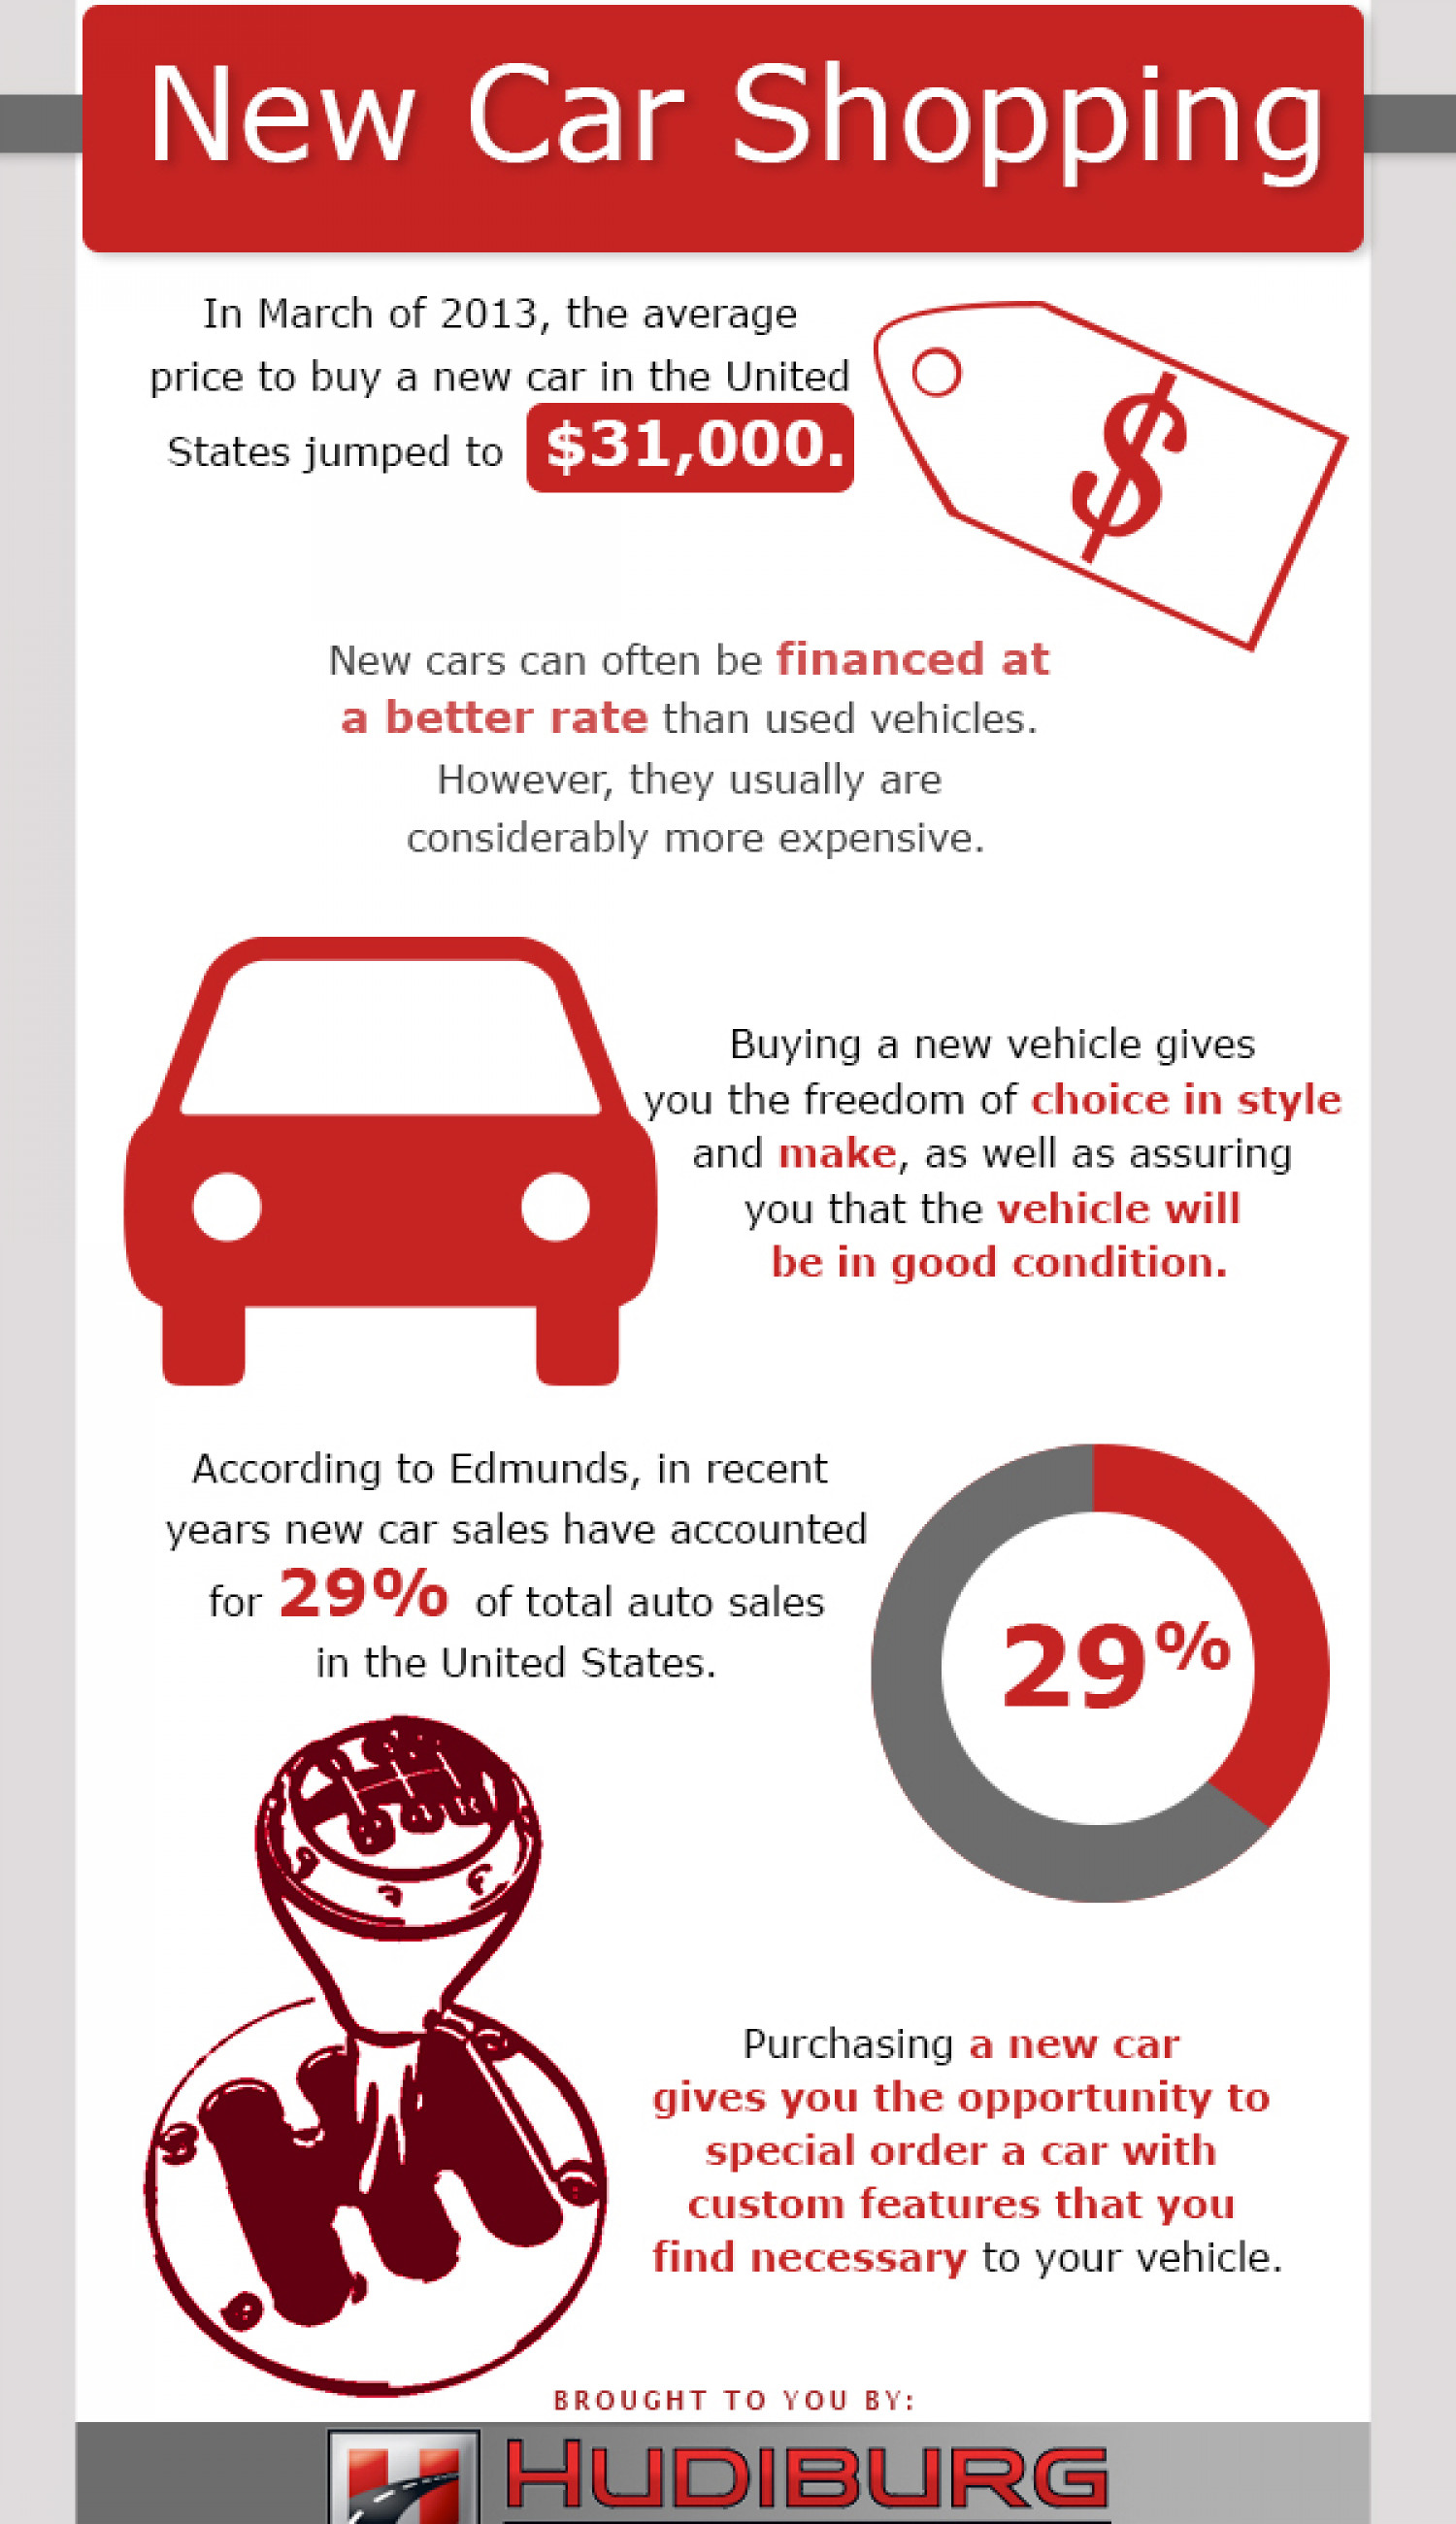 New Car Shopping Infographic